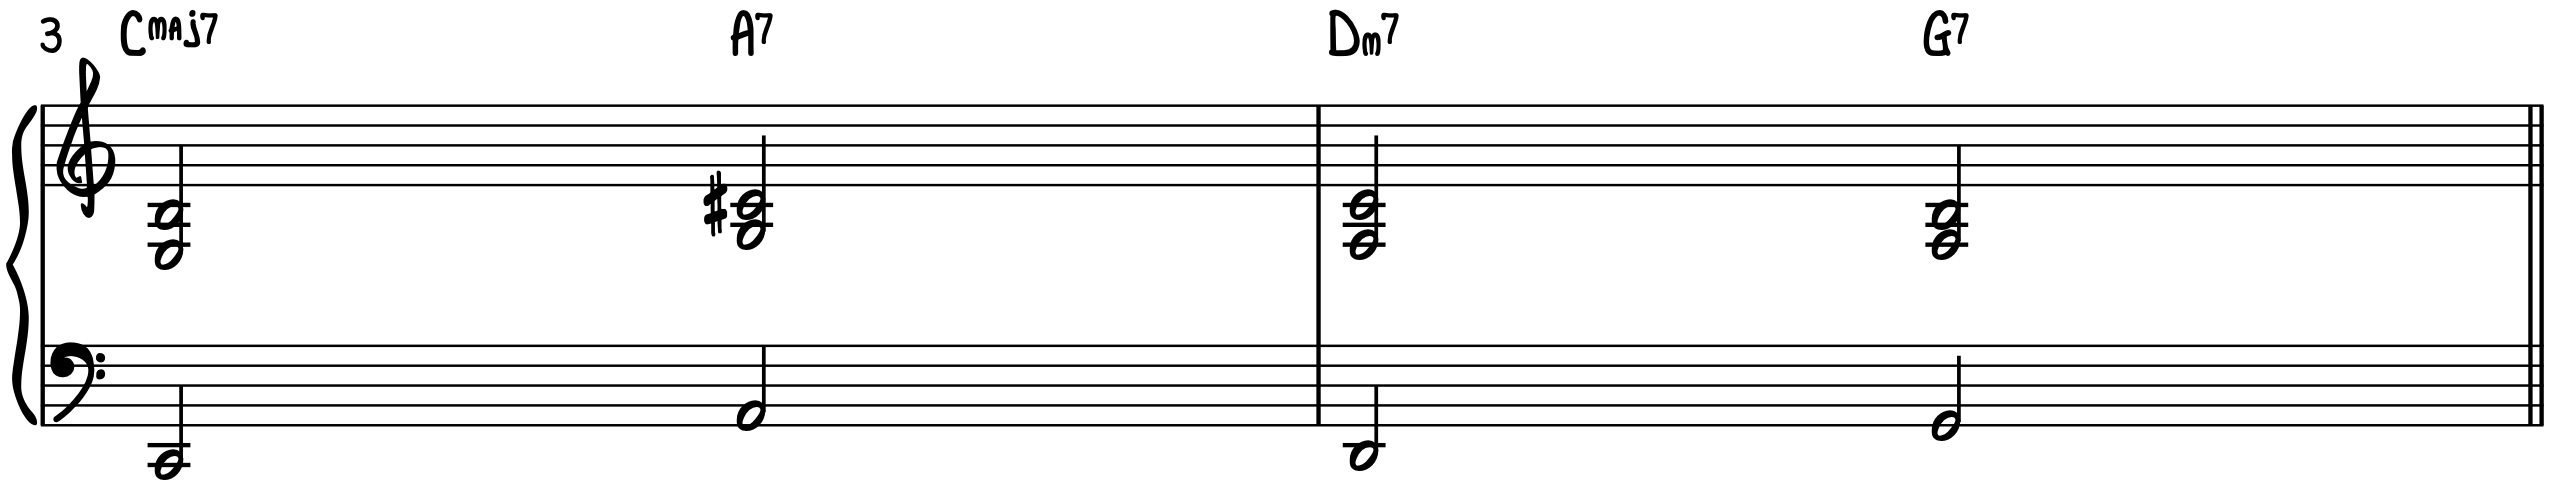 The turnaround progression in C with guide tones in the right hand for jazz piano accompaniment